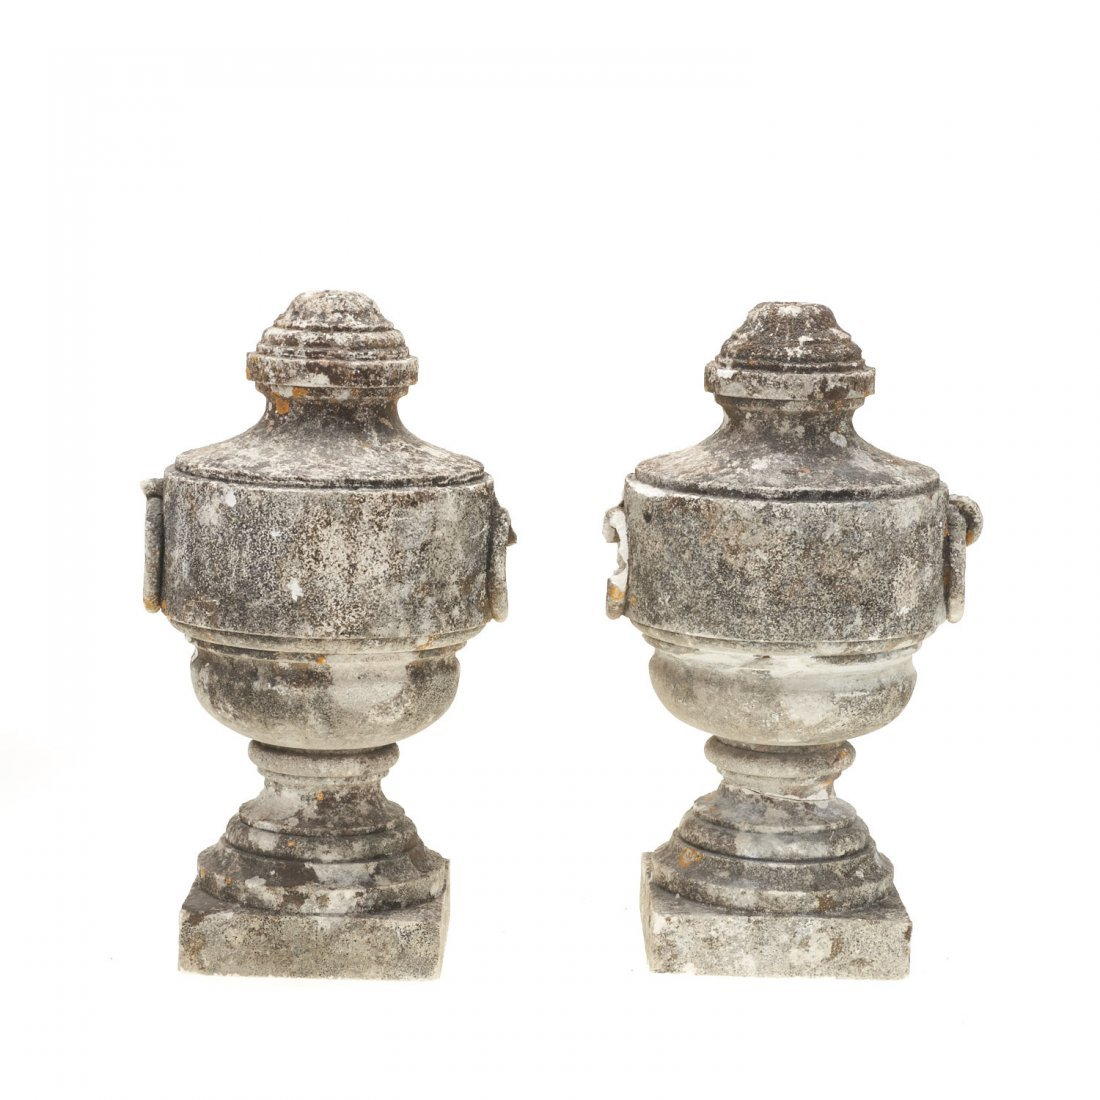 Pair Neo-Classical style cast stone urns